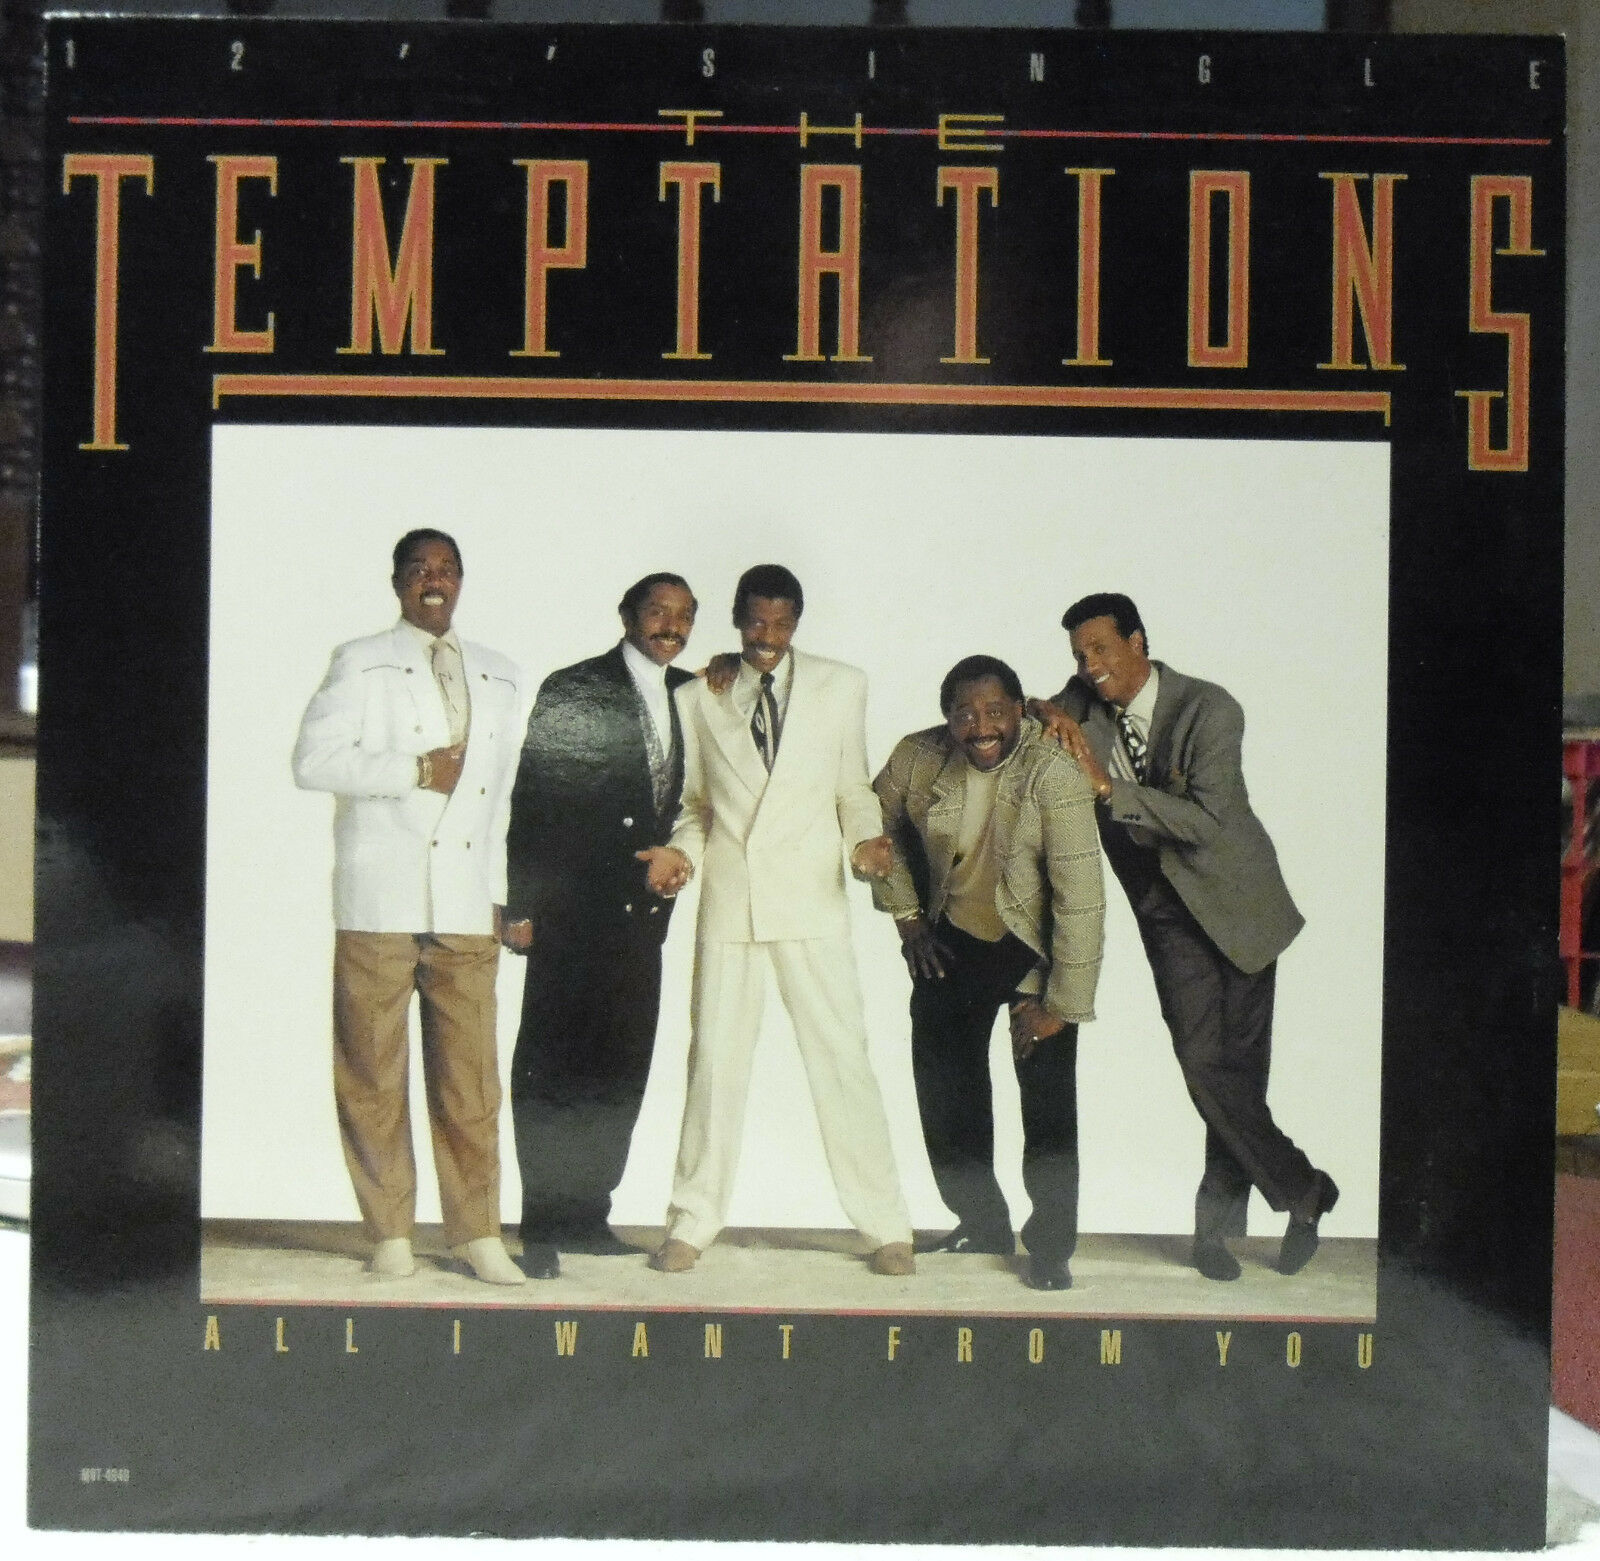 The Temptations All I Want From You 12 Inch Single NM Appears ...